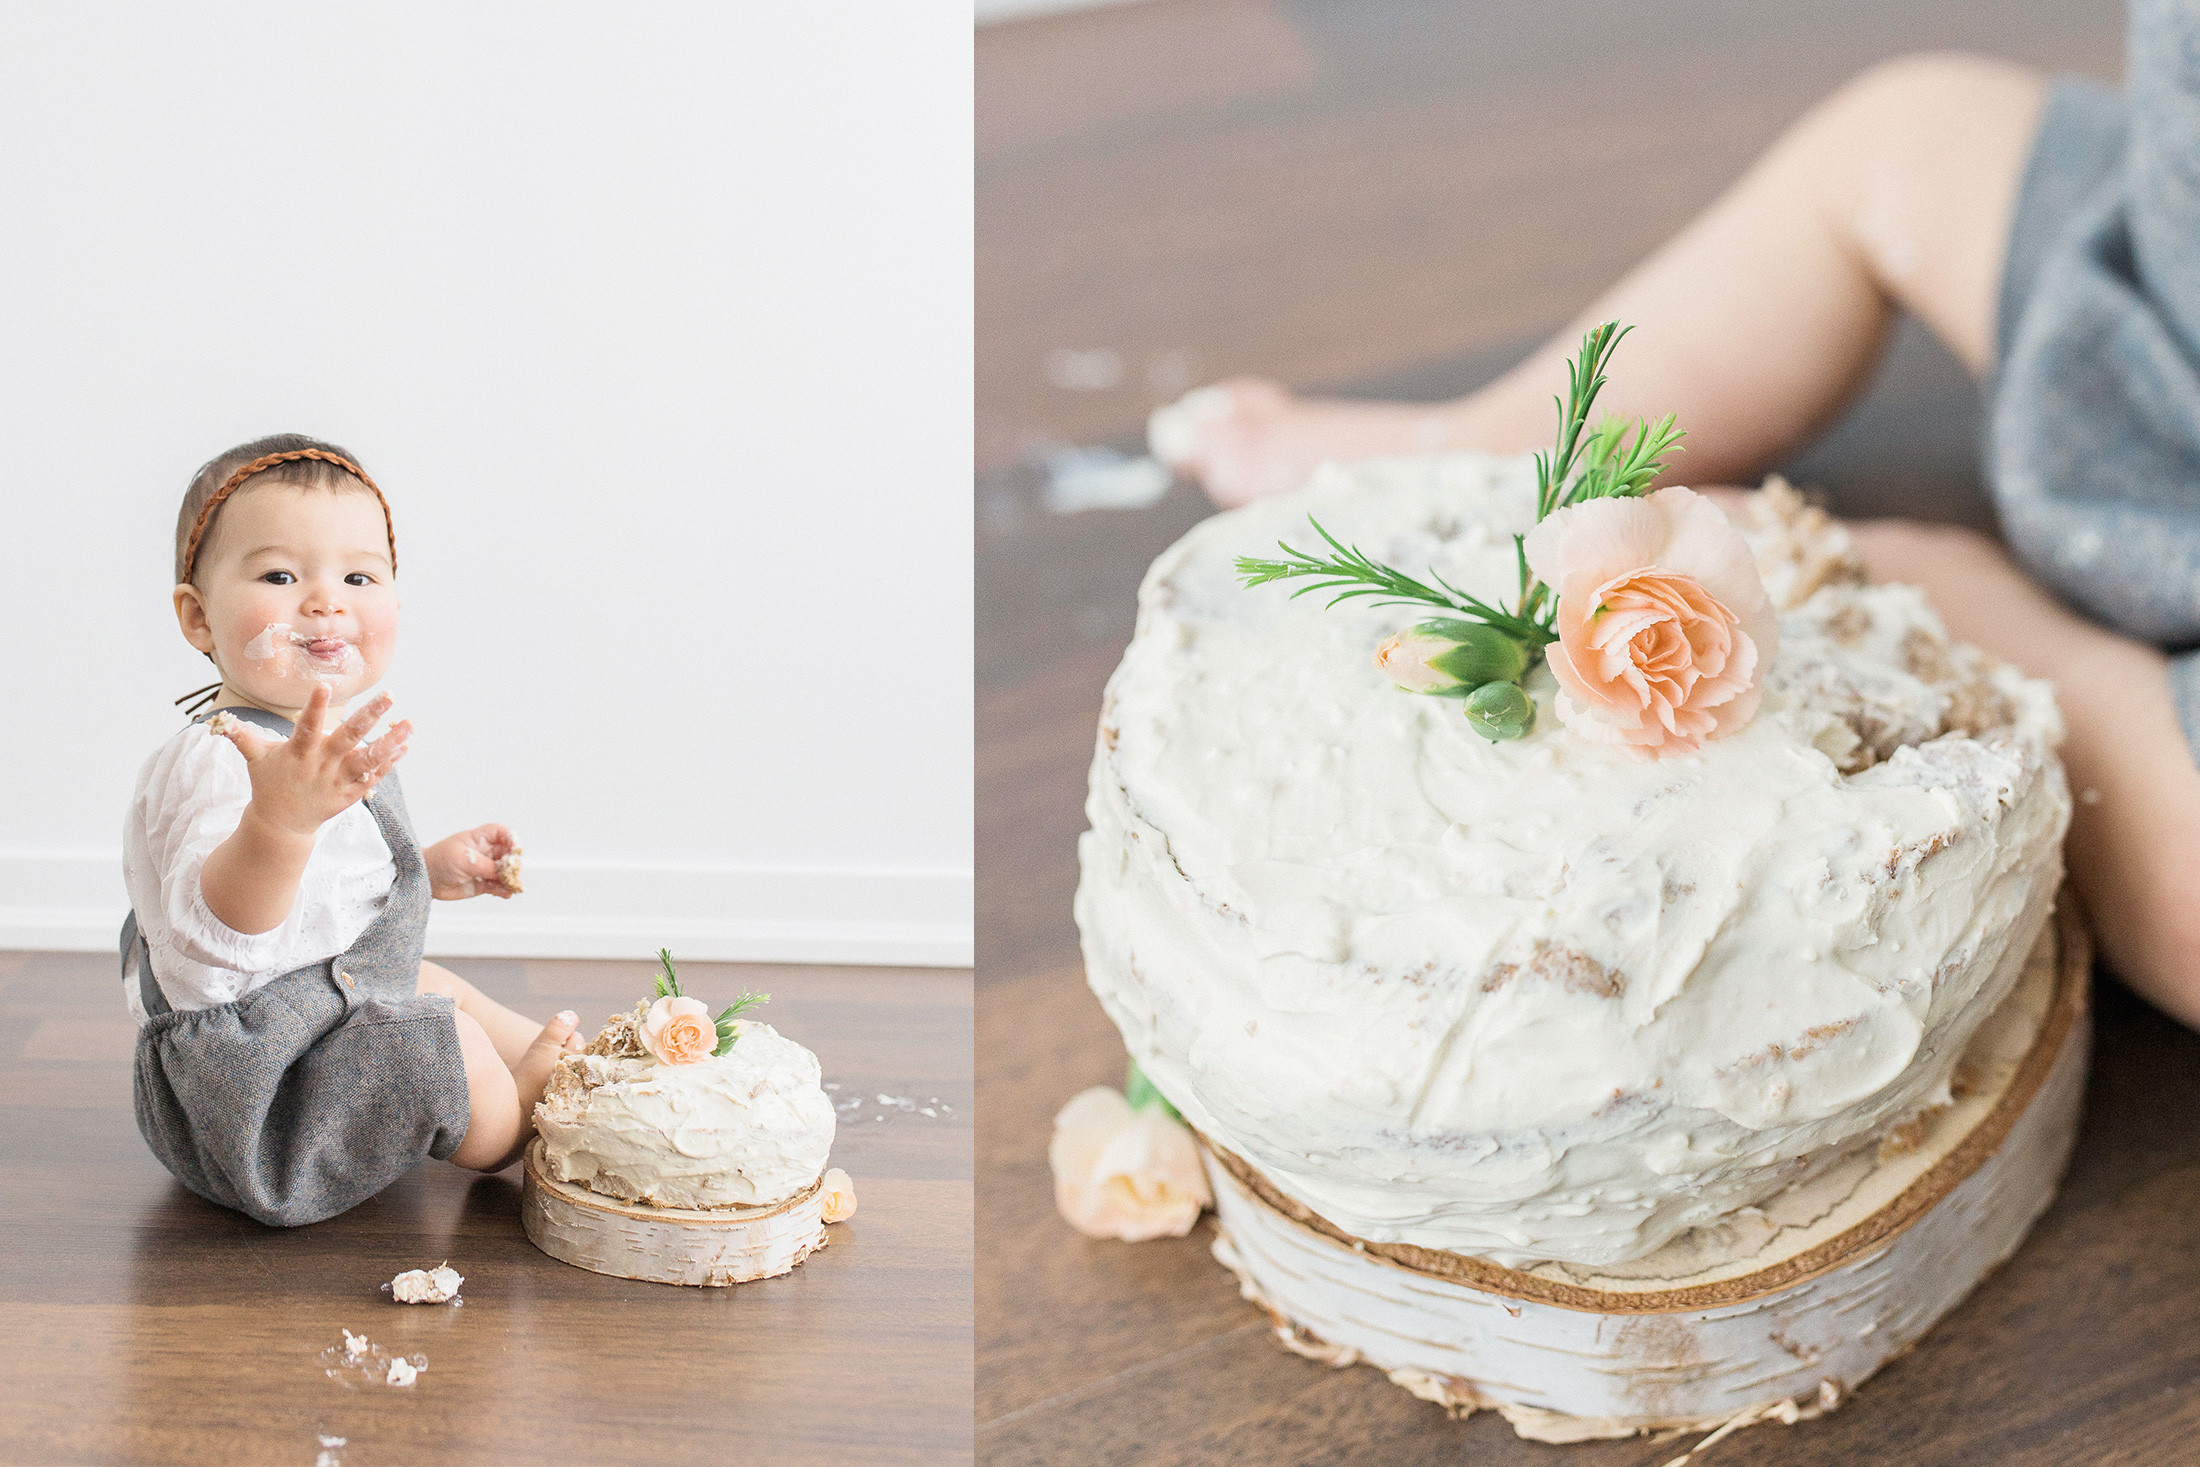 Healthy Baby Birthday Cake  recipe healthy sugar free smash cake for baby s birthday